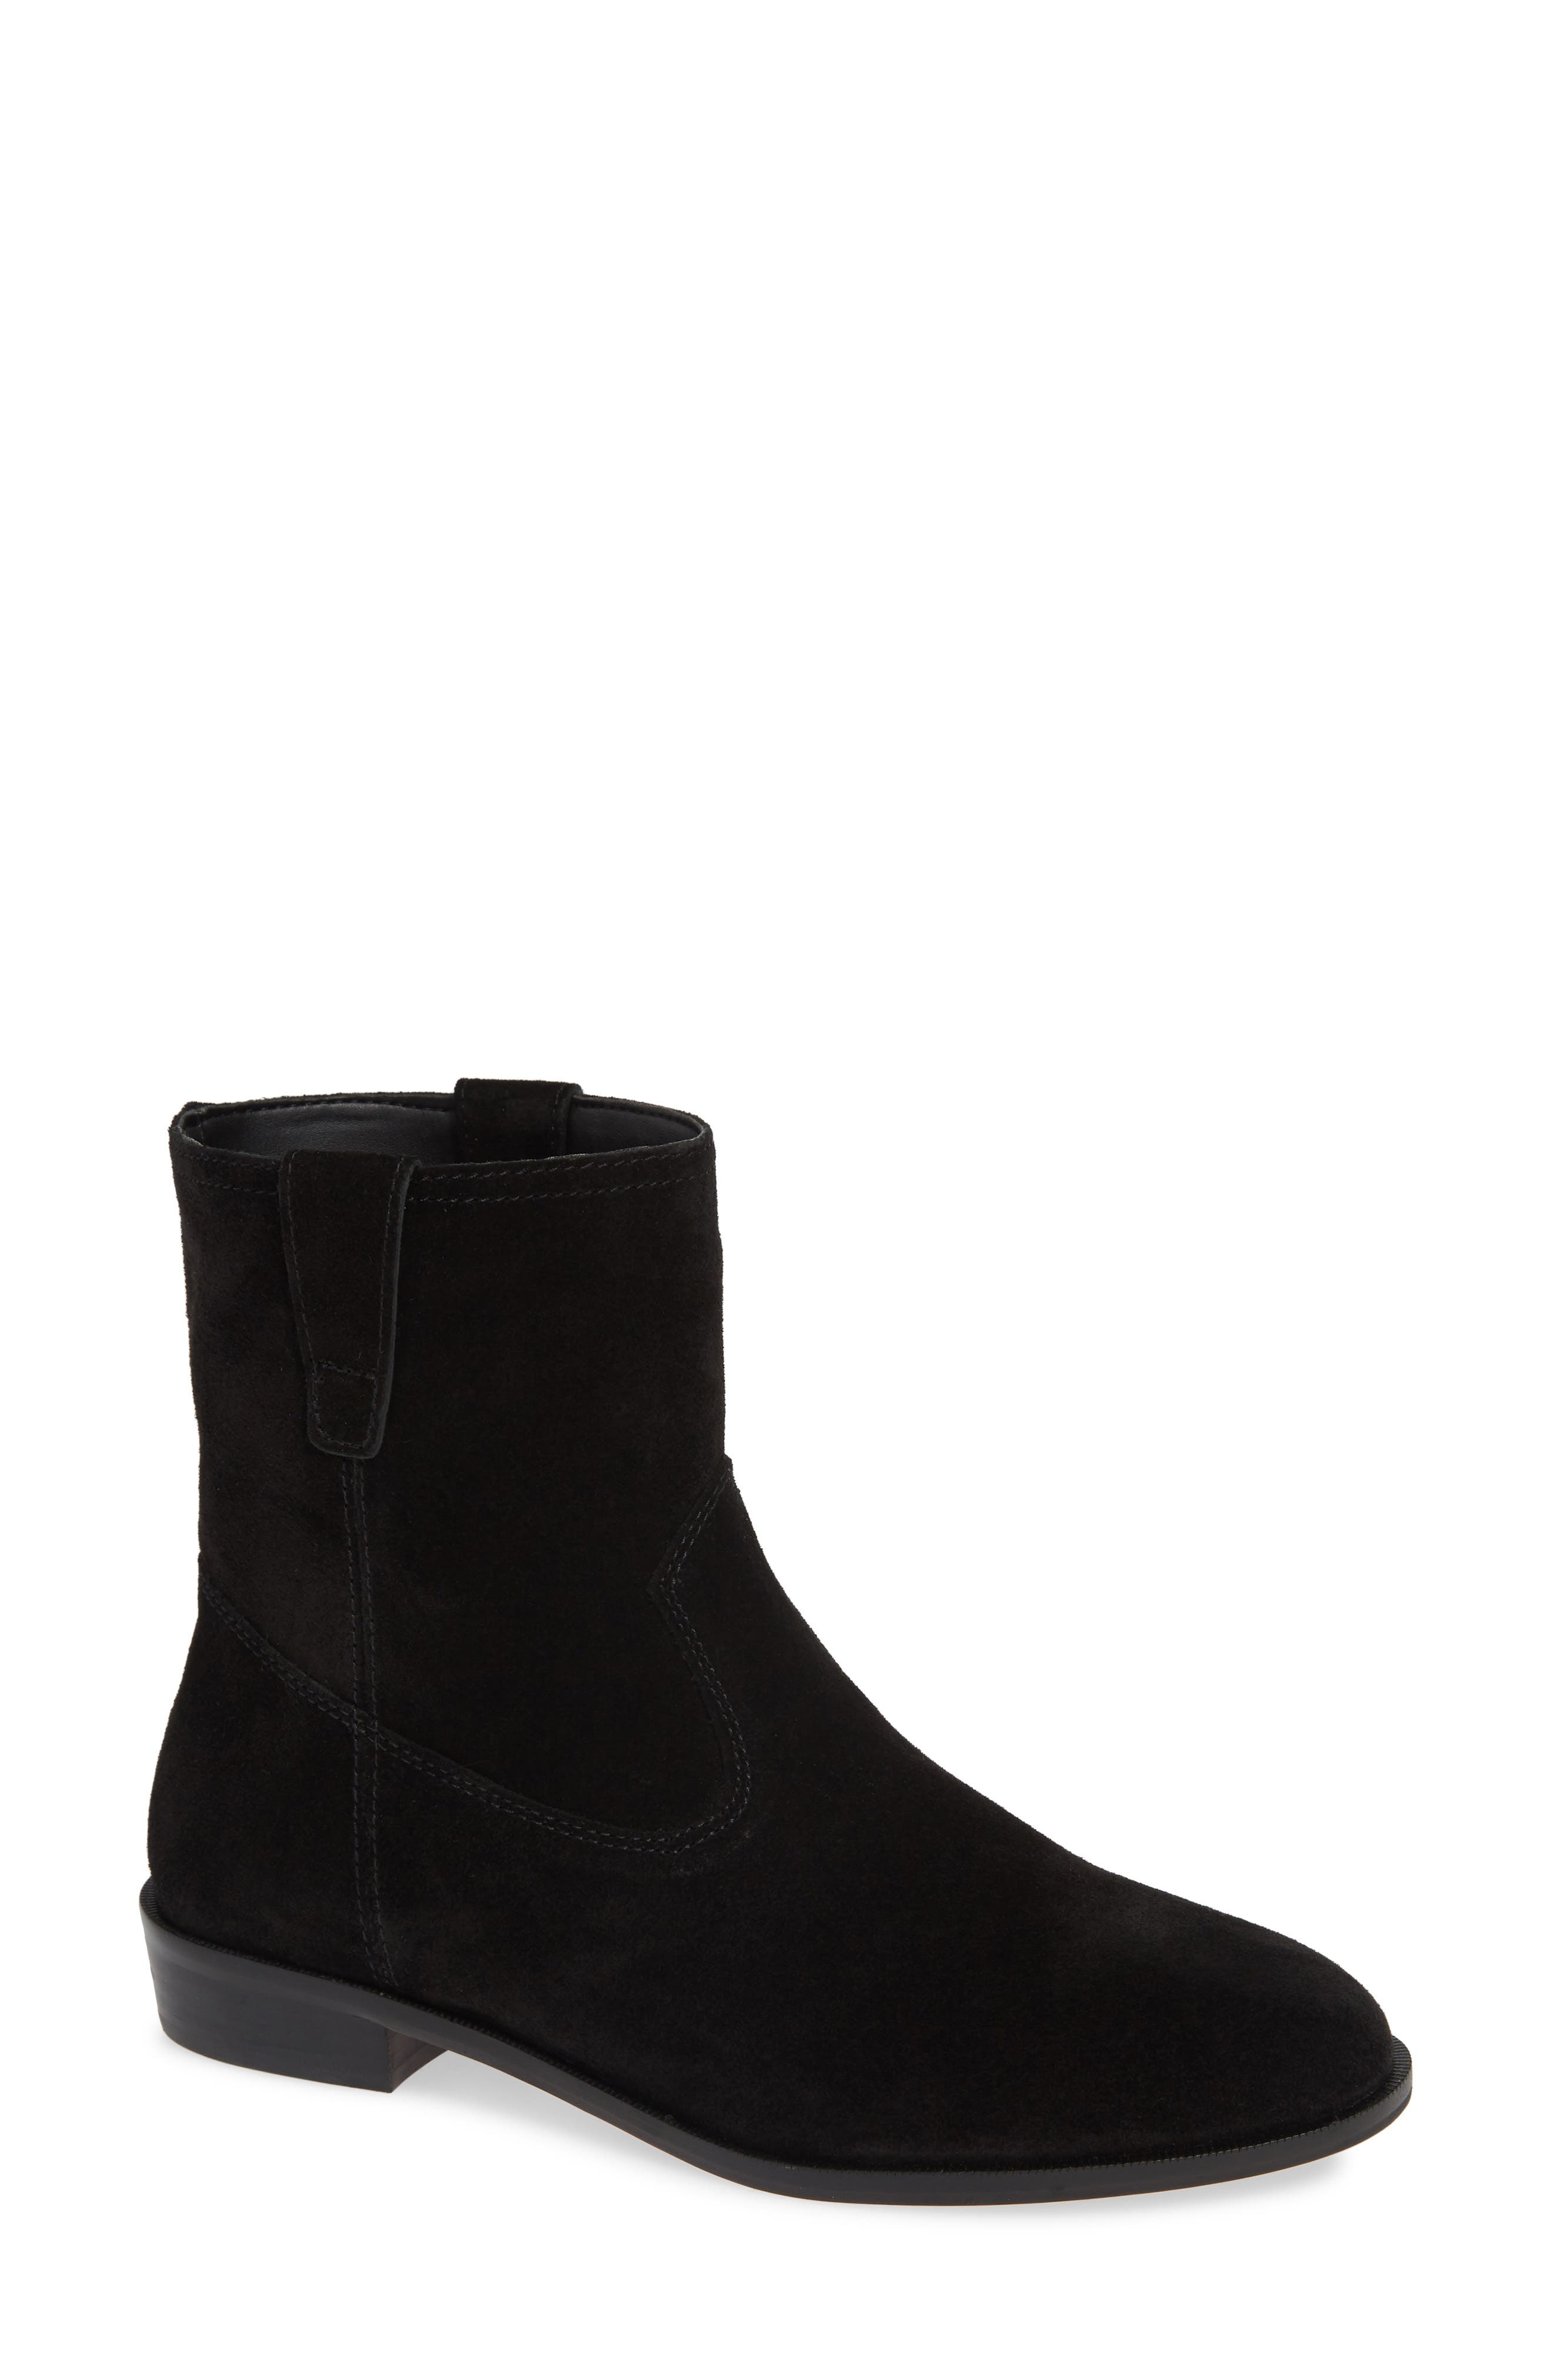 Chasidy Bootie,                             Main thumbnail 1, color,                             BLACK SUEDE